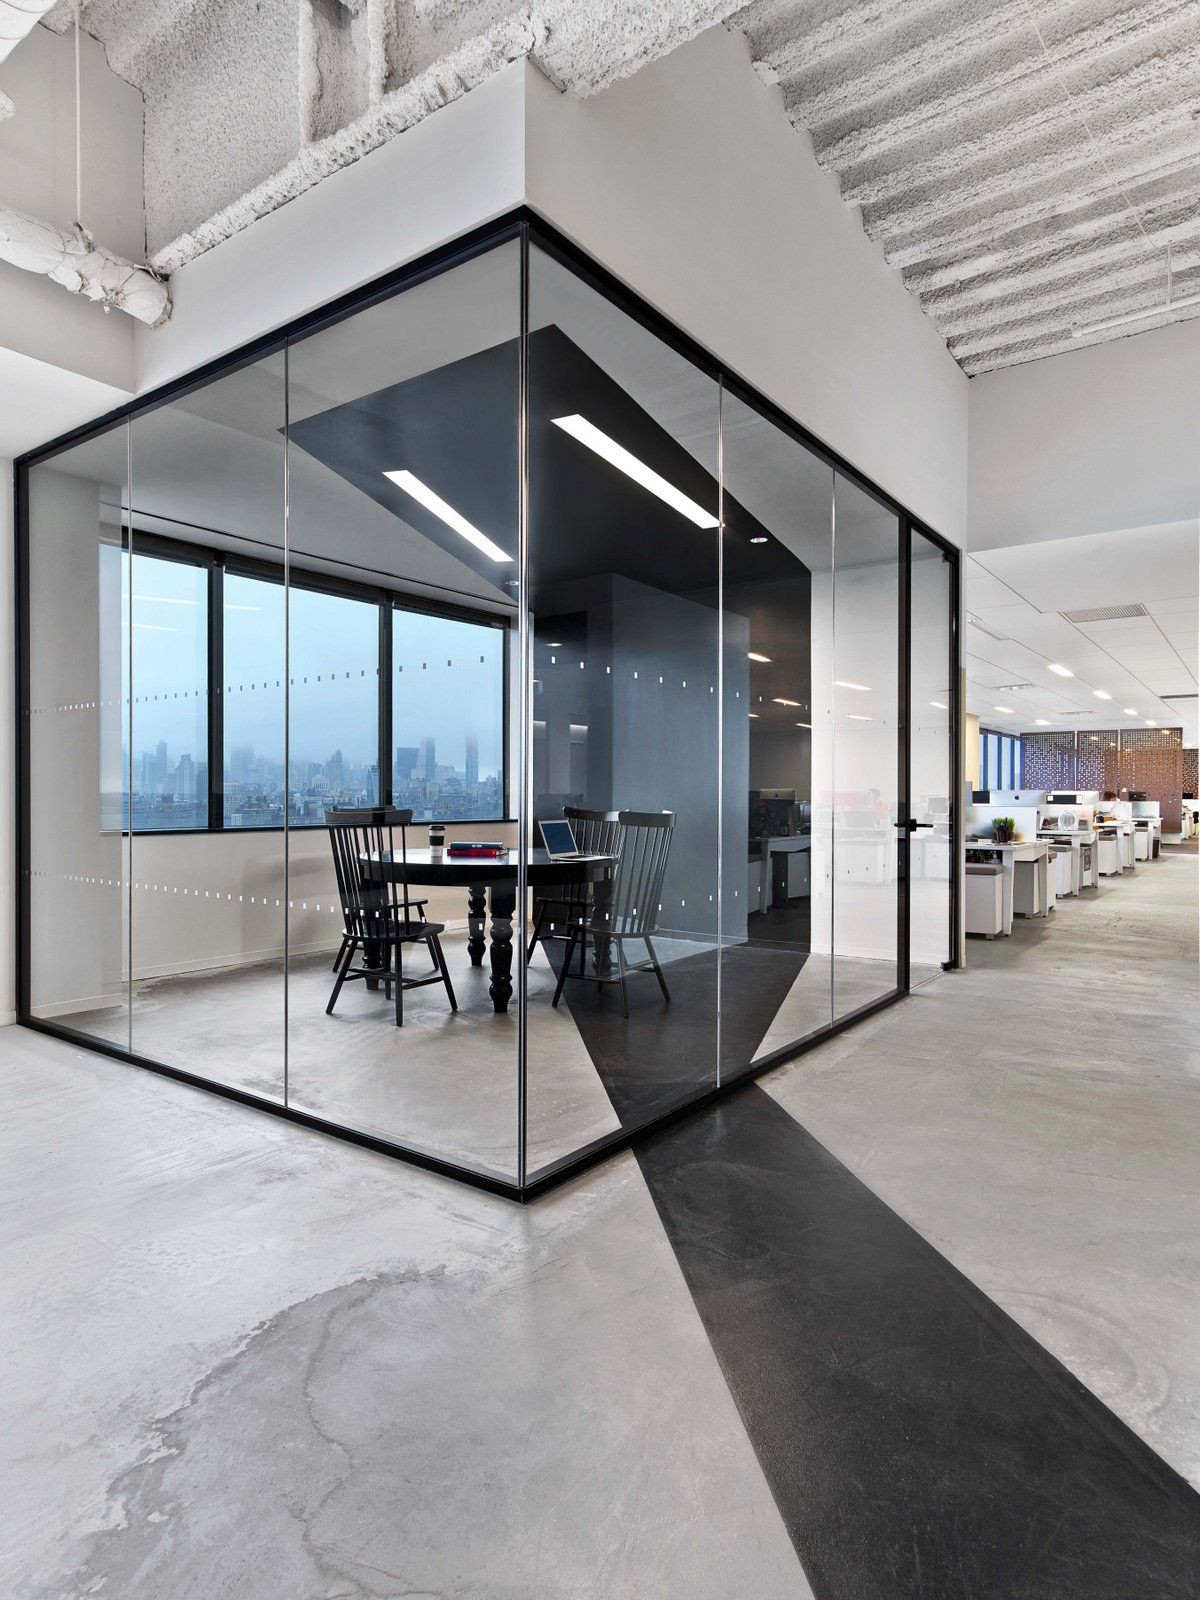 office-design-nyc-awesome-fice-tour-saatchi-amp-saatchi-fices-new-york-city-of-office-design-nyc.jpg